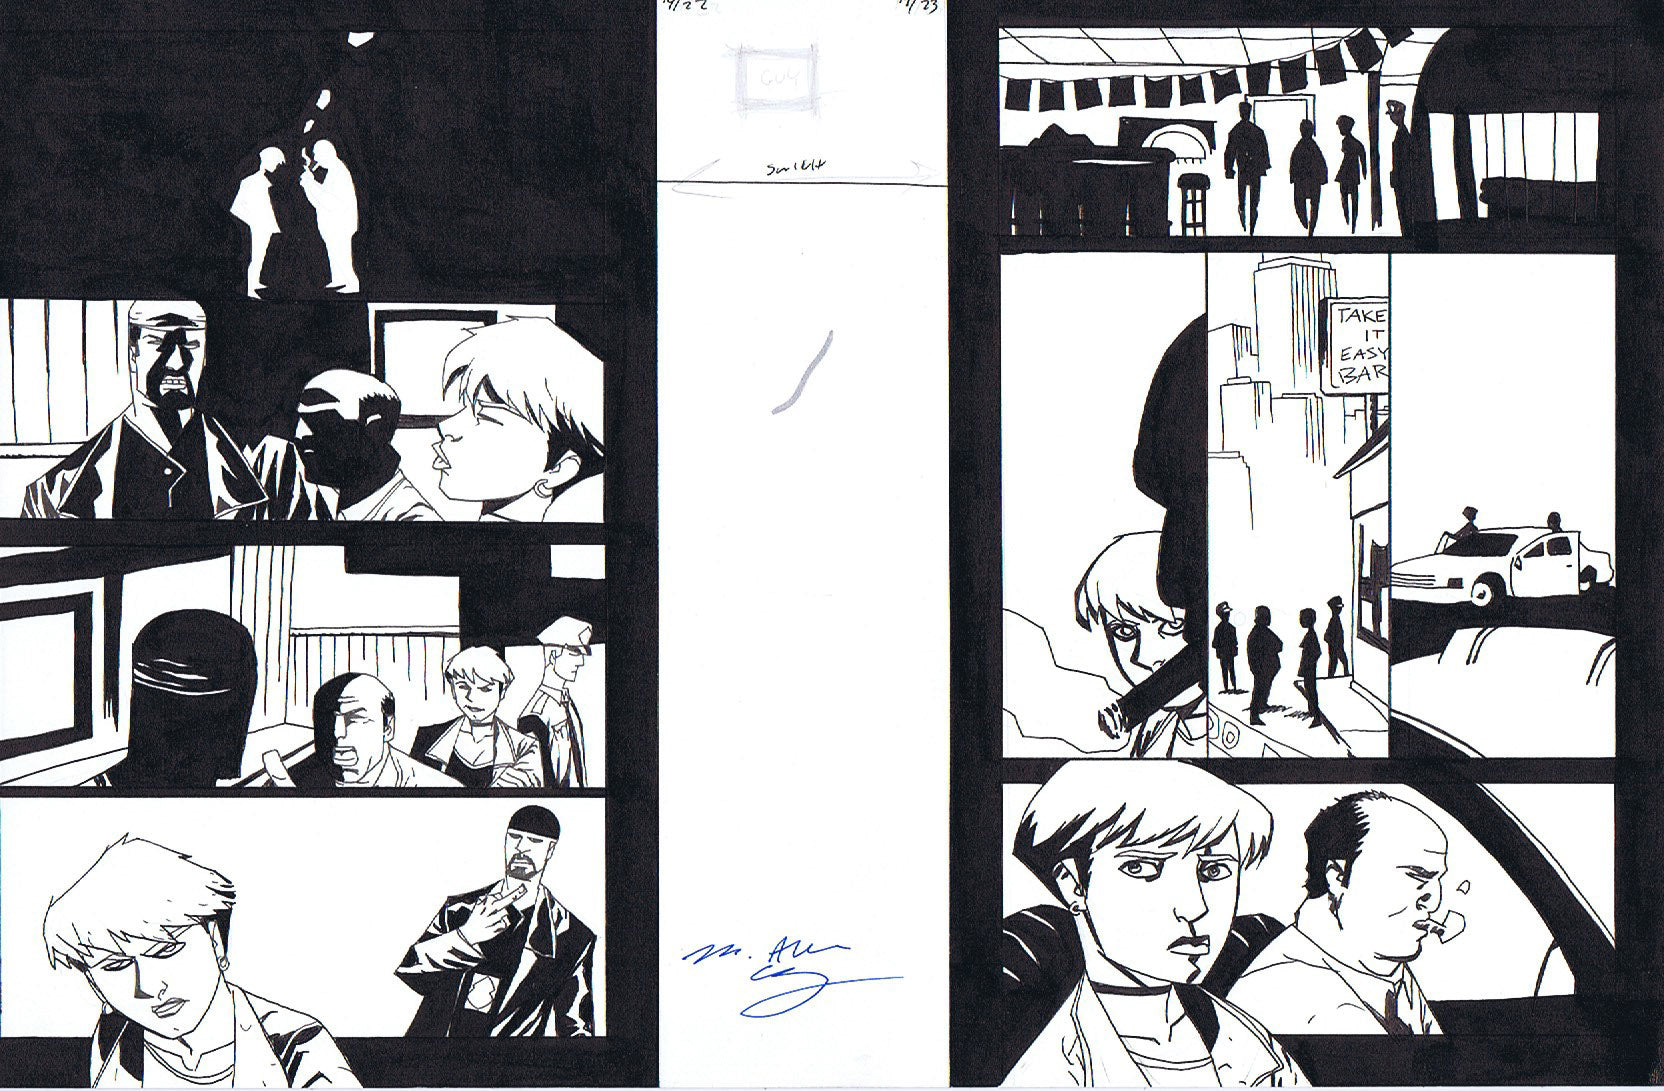 Powers v2: Secret Identity #19 Pages 22-23 Double Page